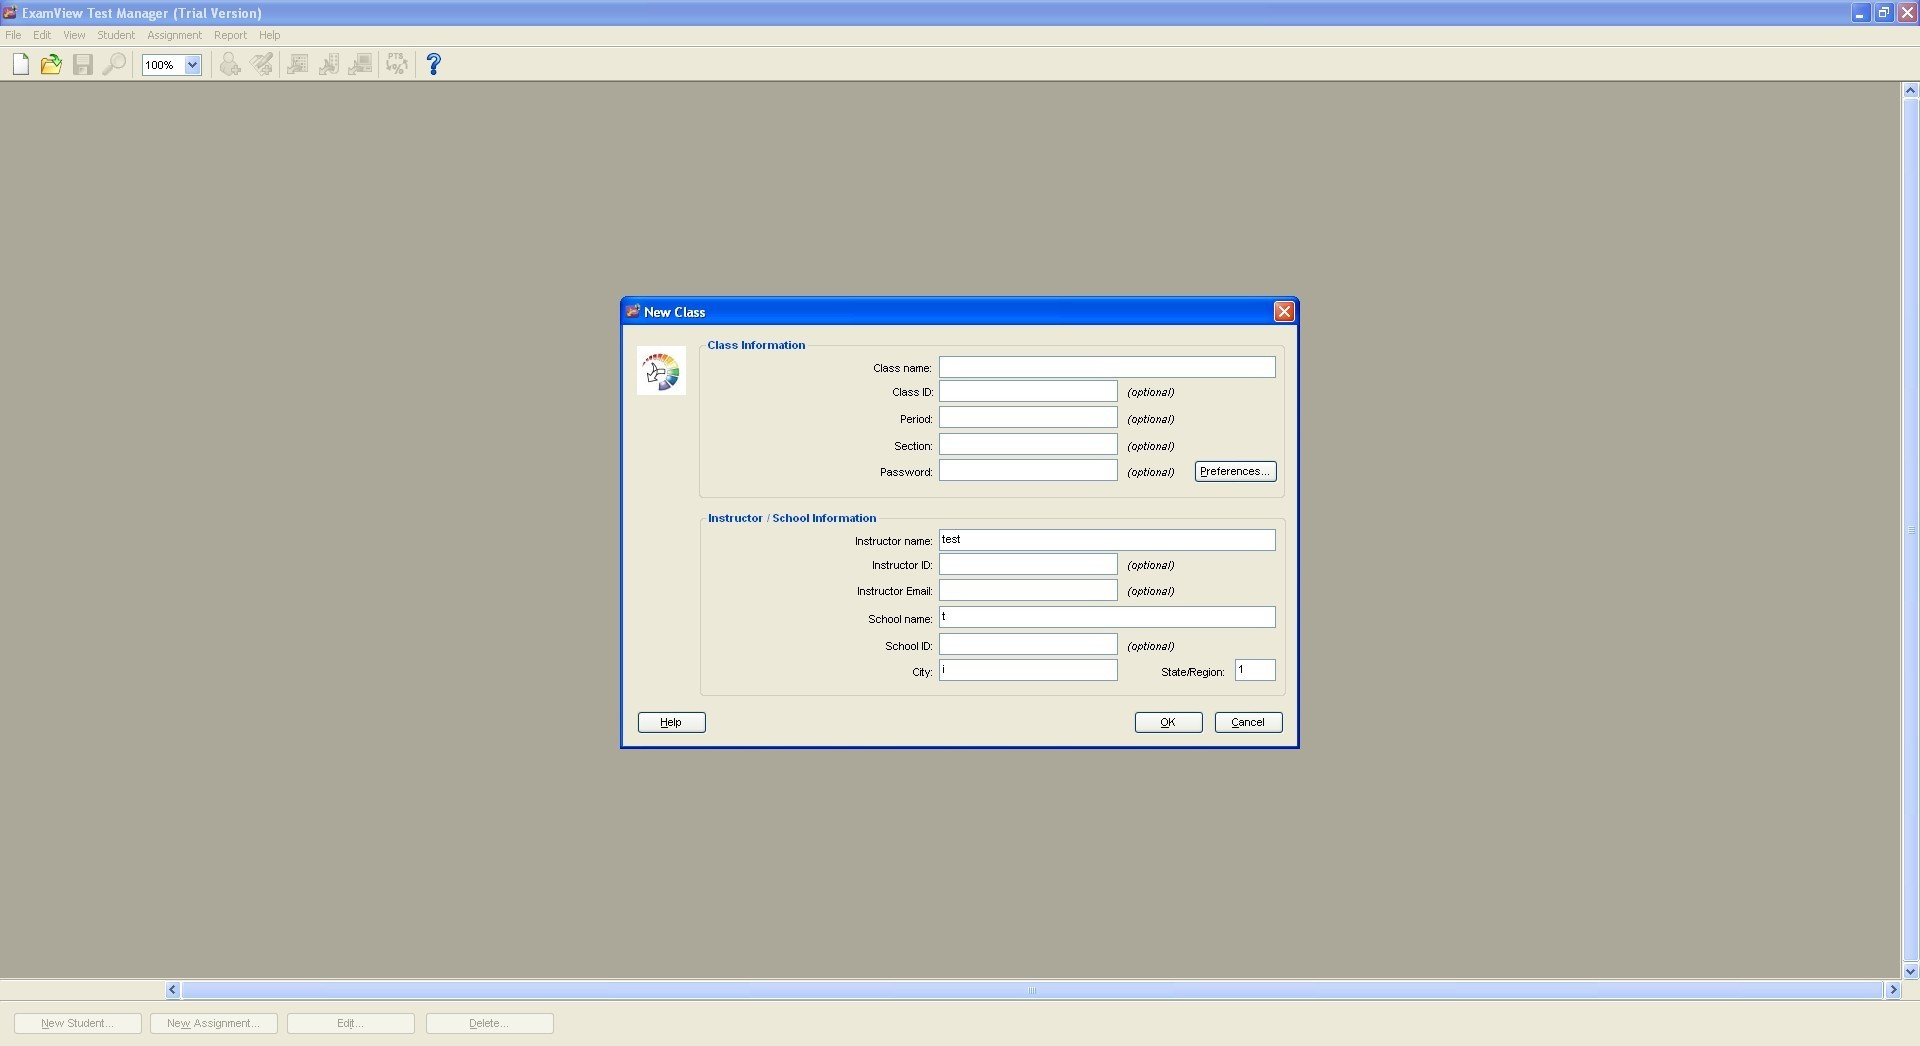 Test manager window